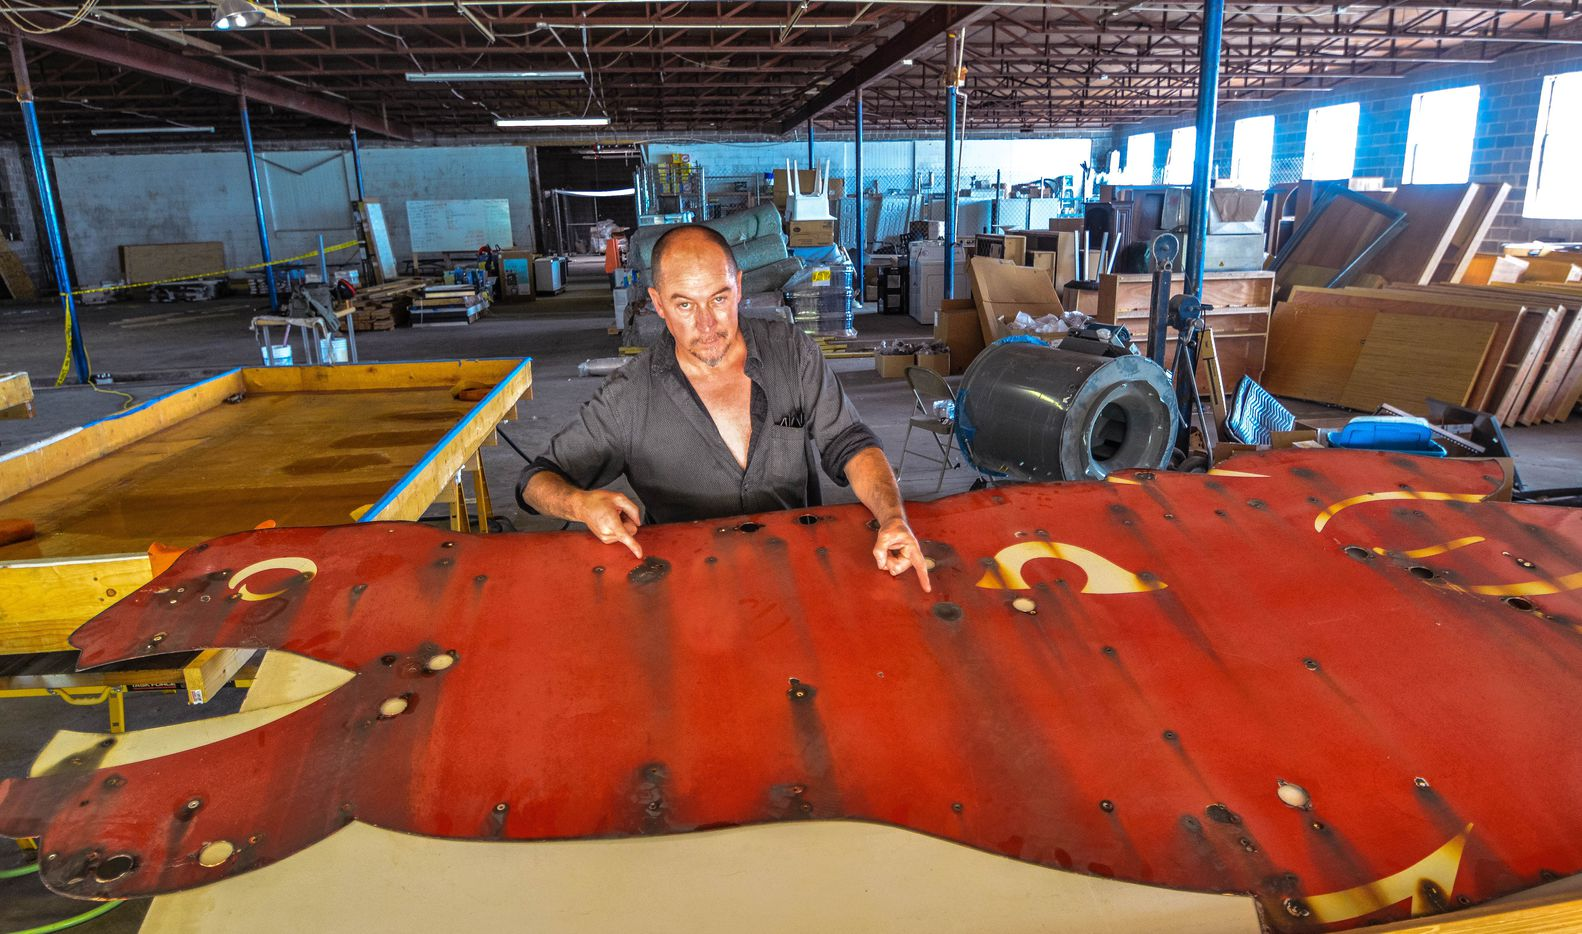 Michael Van Enter worked on the restoration of the original Dallas Pegasus sign, which stood on top of the Magnolia building from the 1930s until 1999.